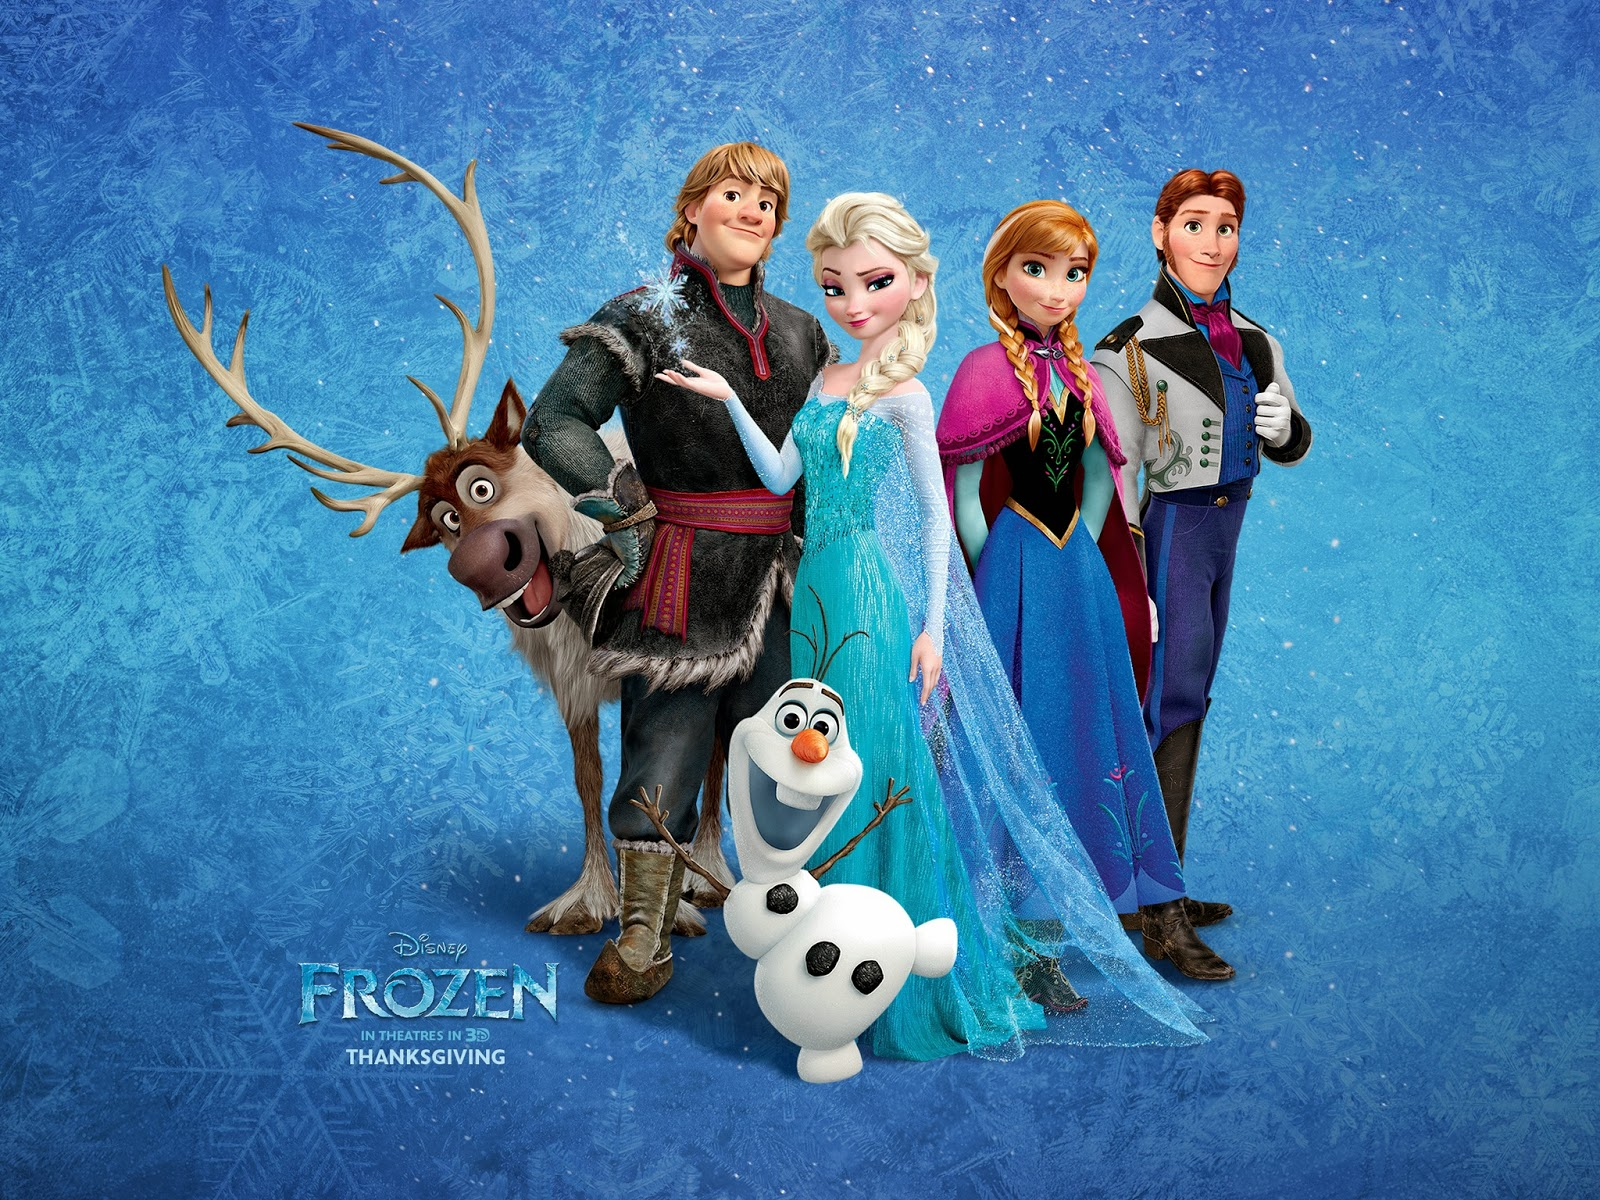 Free Download Frozen (2013) 720p WEB-DL